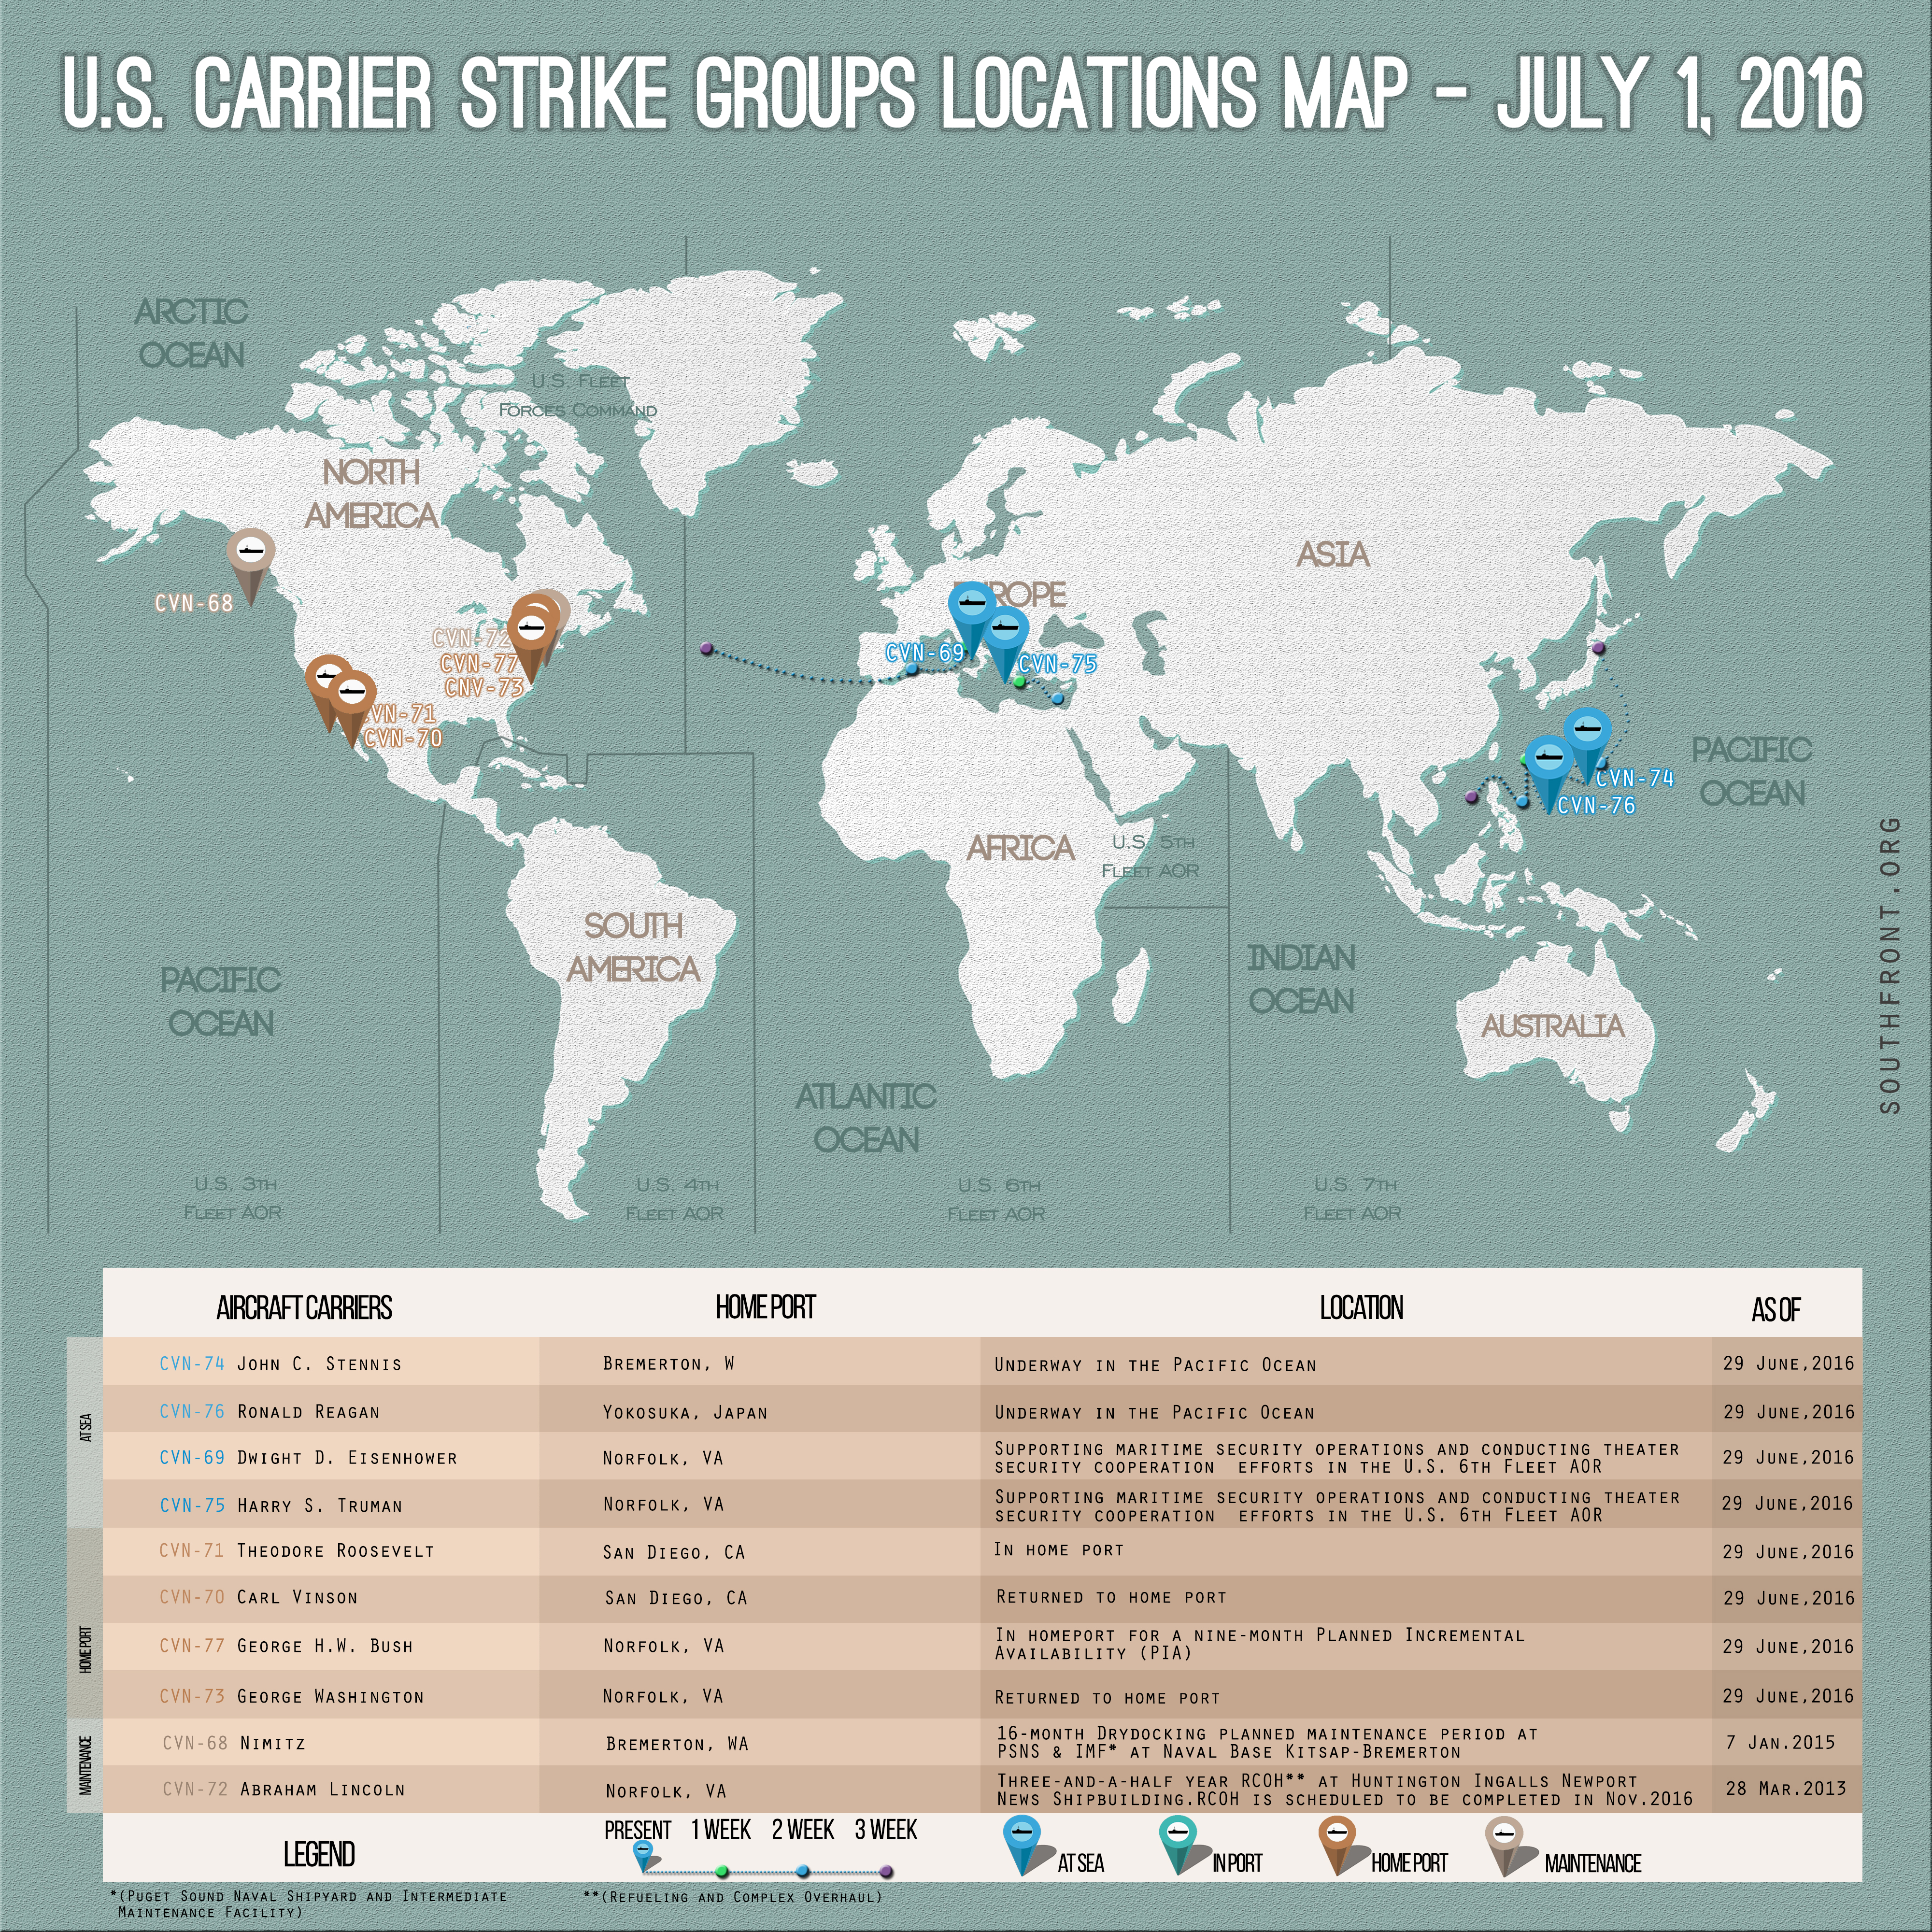 US Carrier Strike Groups Locations Map – July 1, 2016